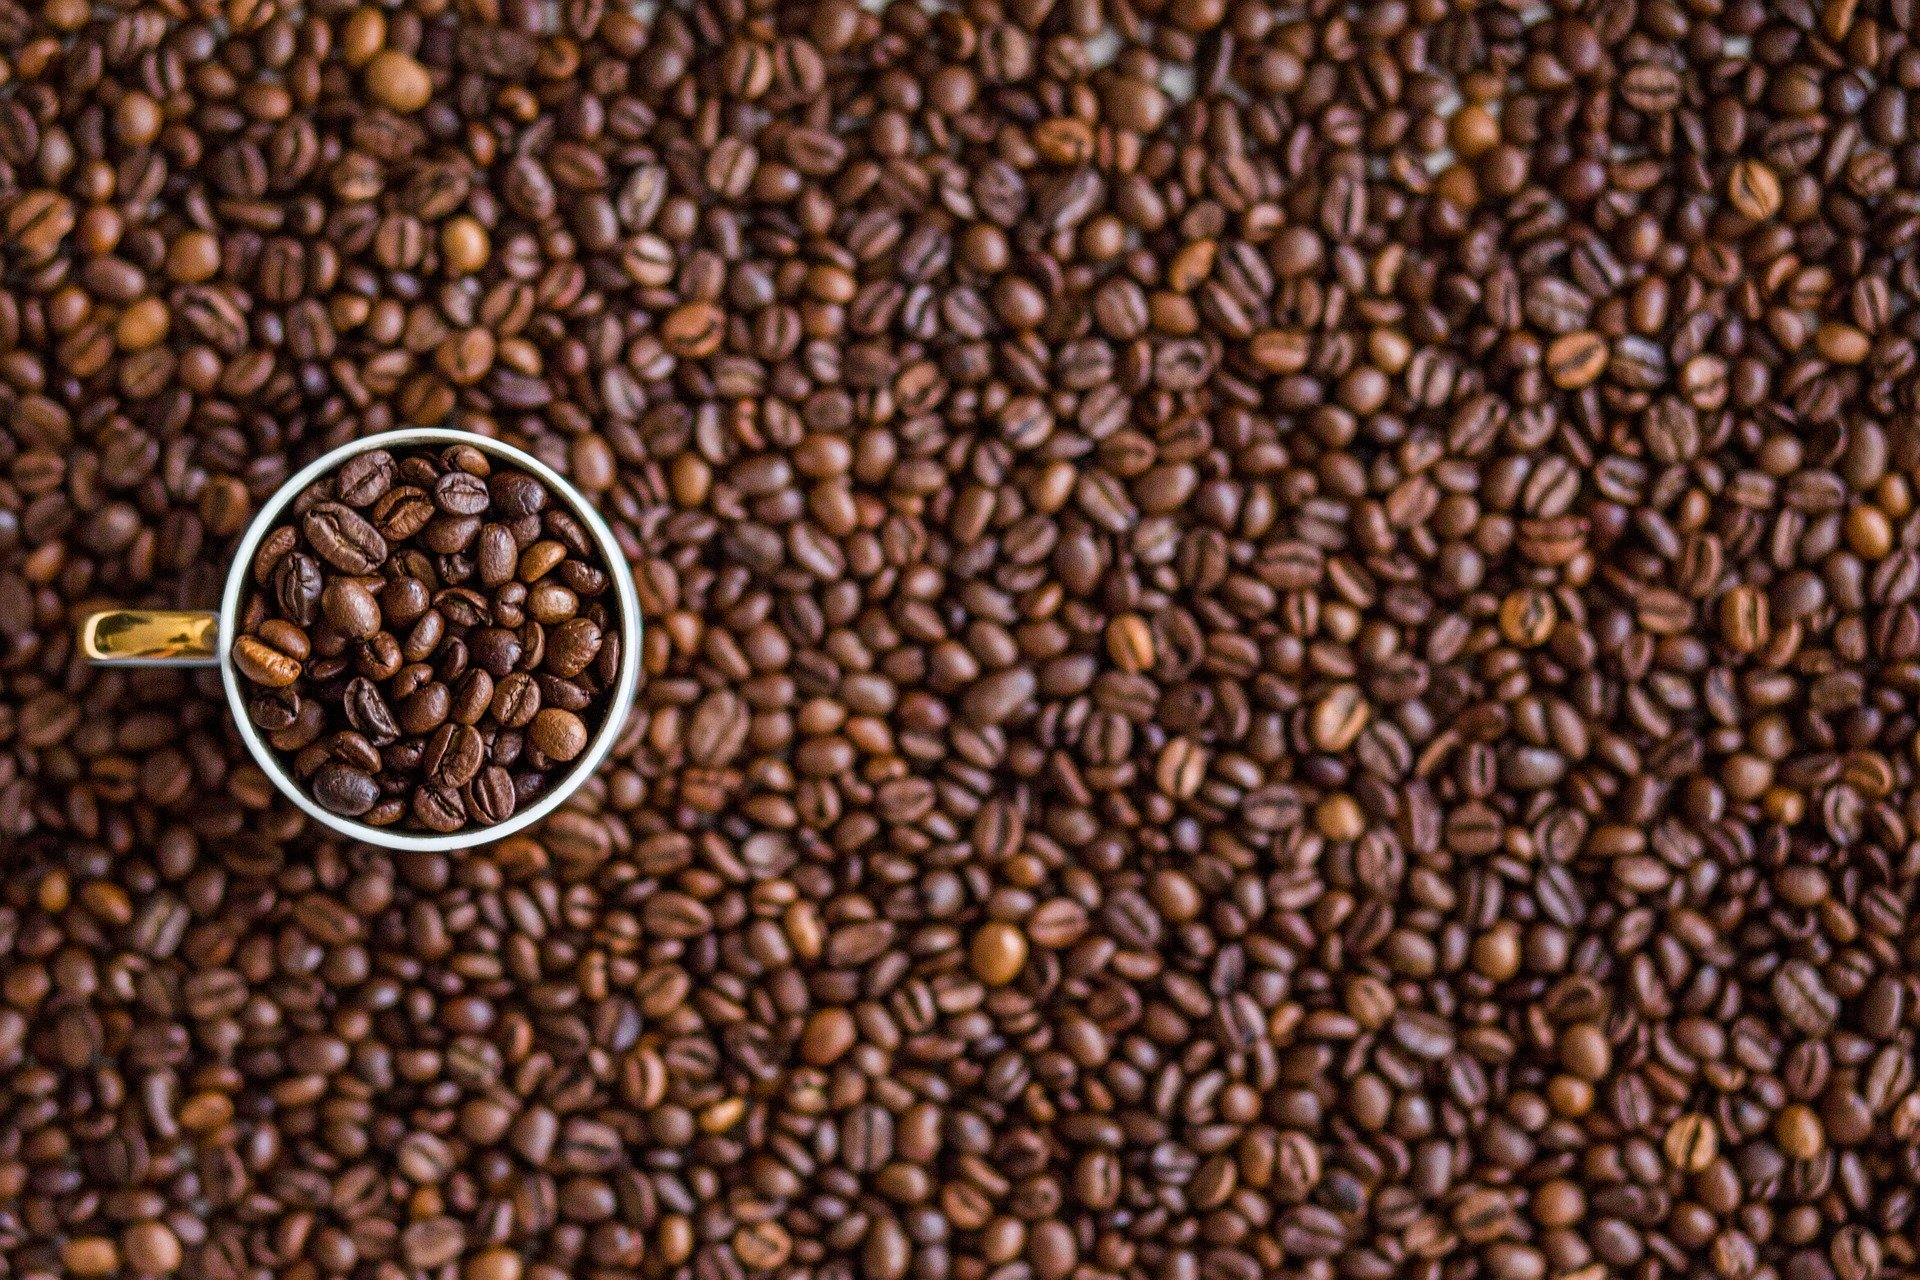 Top 15 Coffee Making Items To Make Your Brew Special